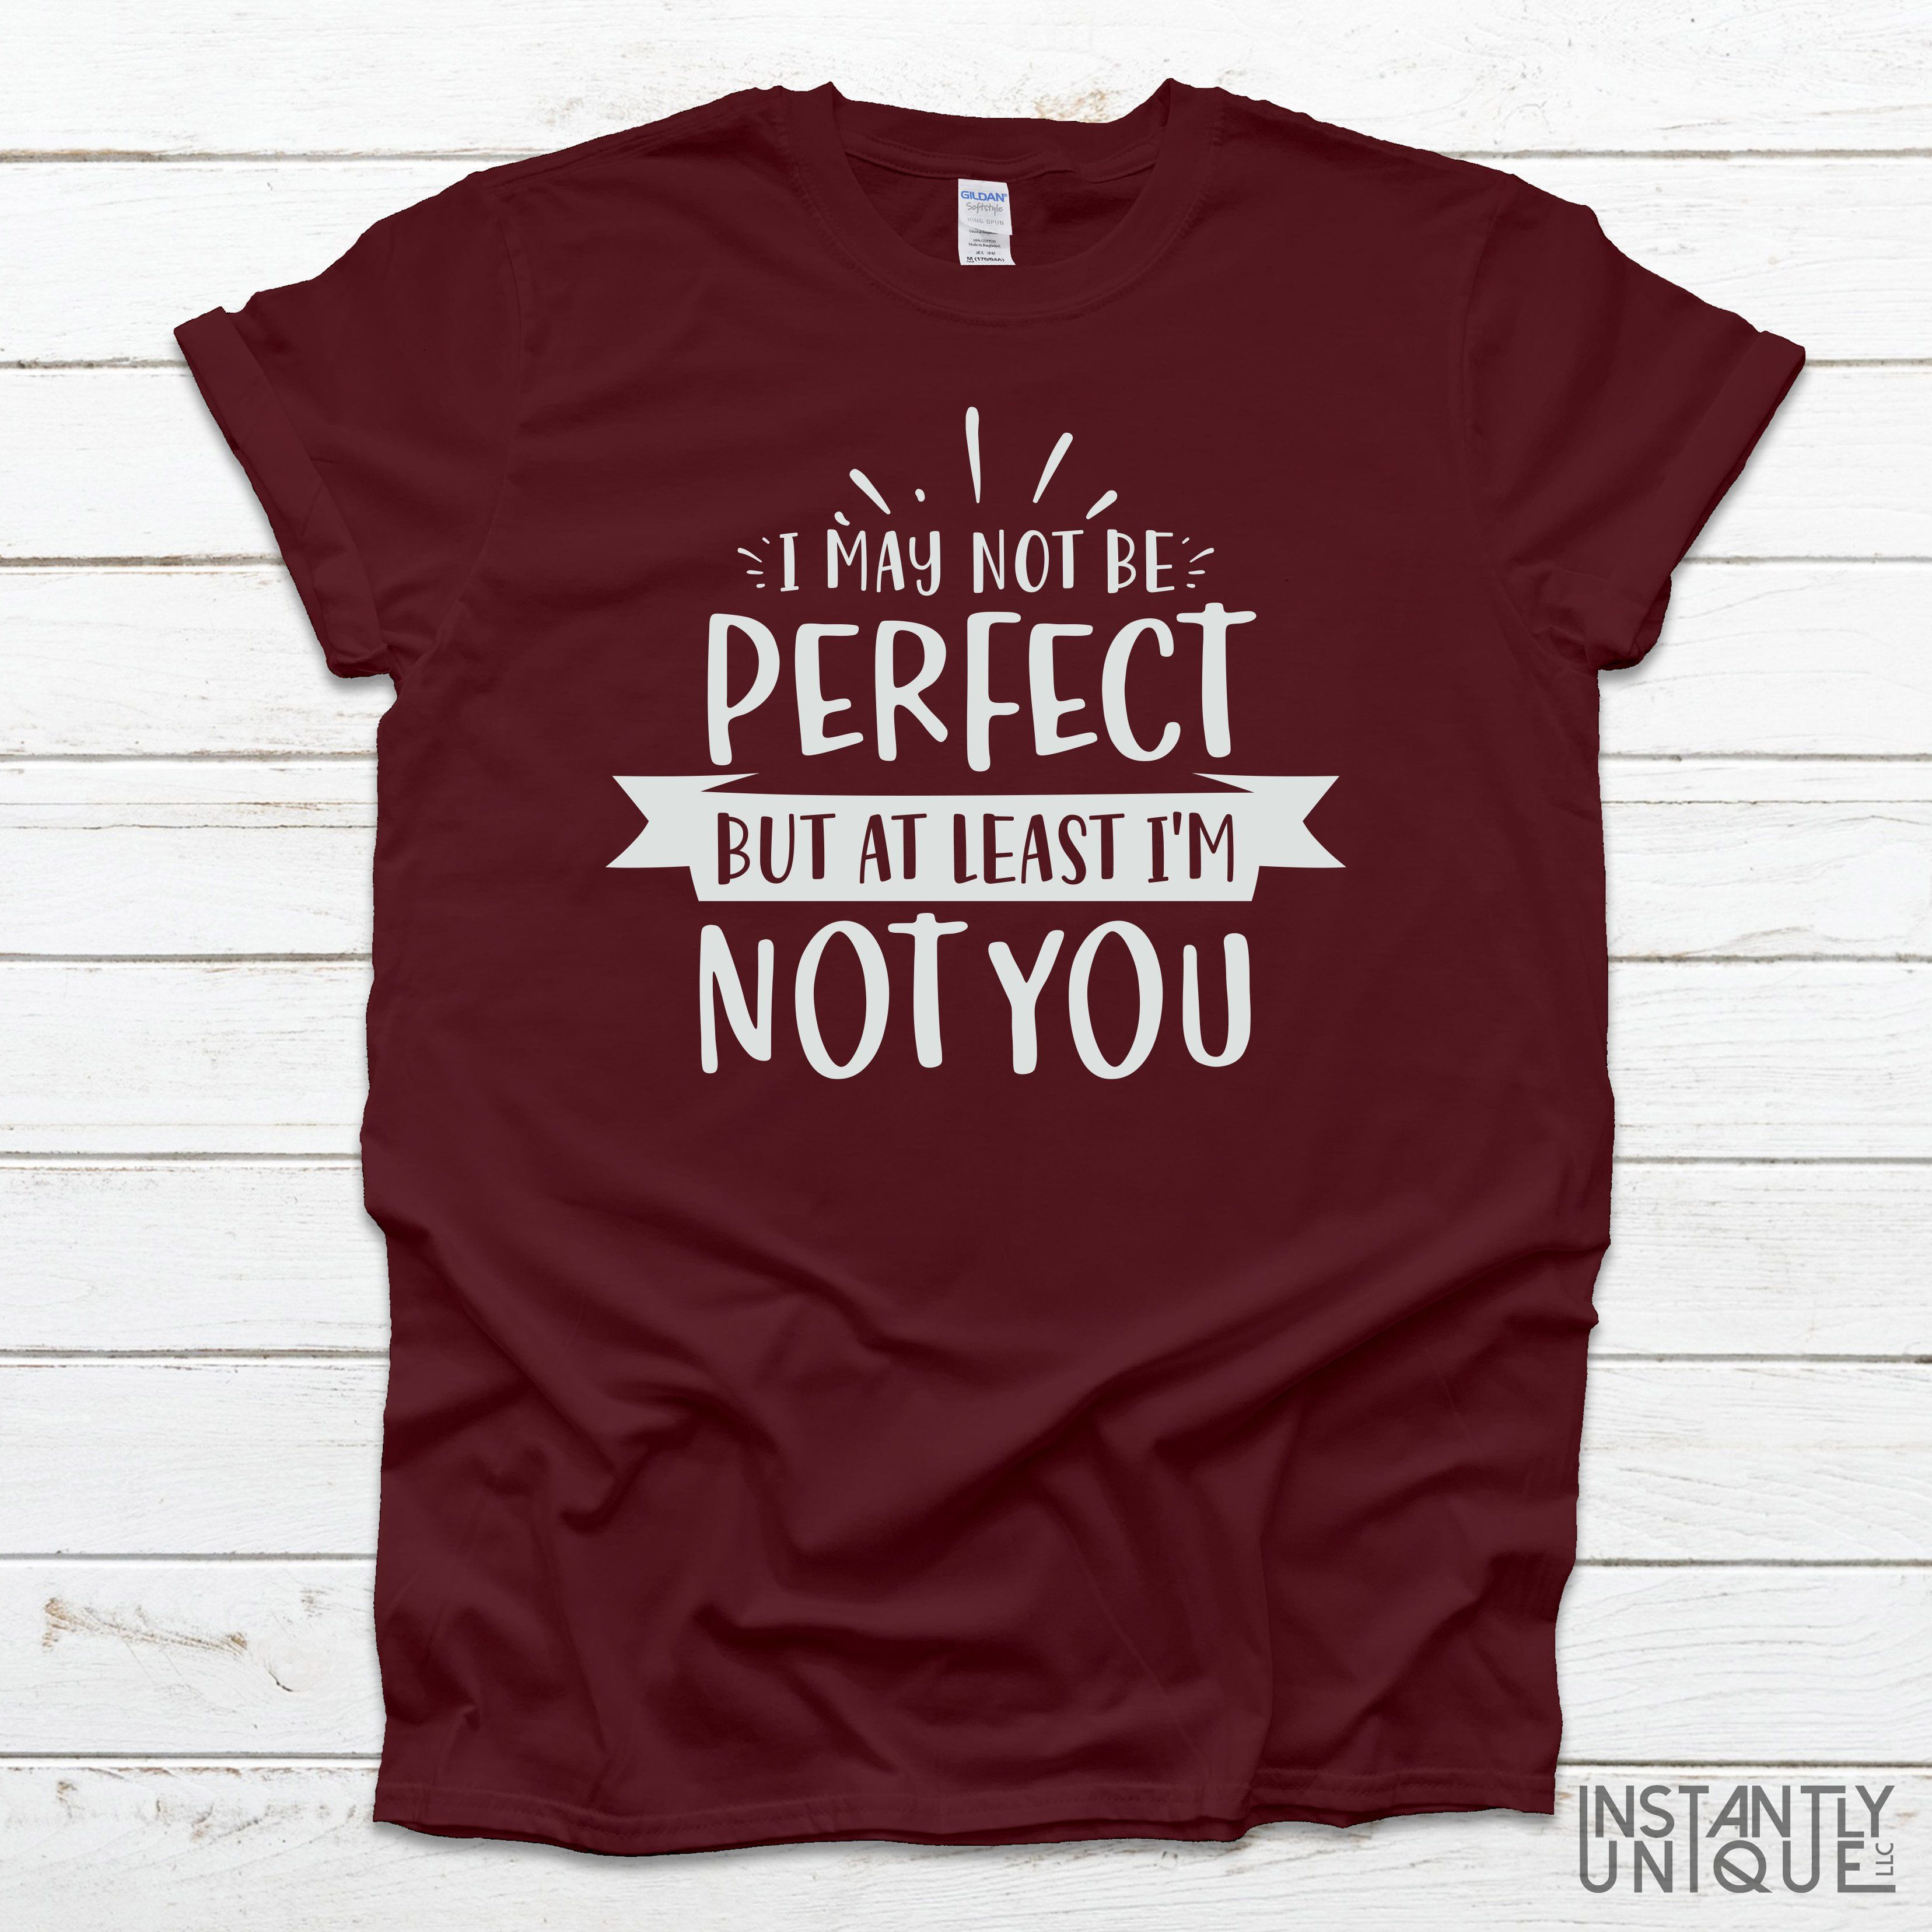 I may not be perfect but at least I'm not you! Funny T-Shirt - XL / Graphite